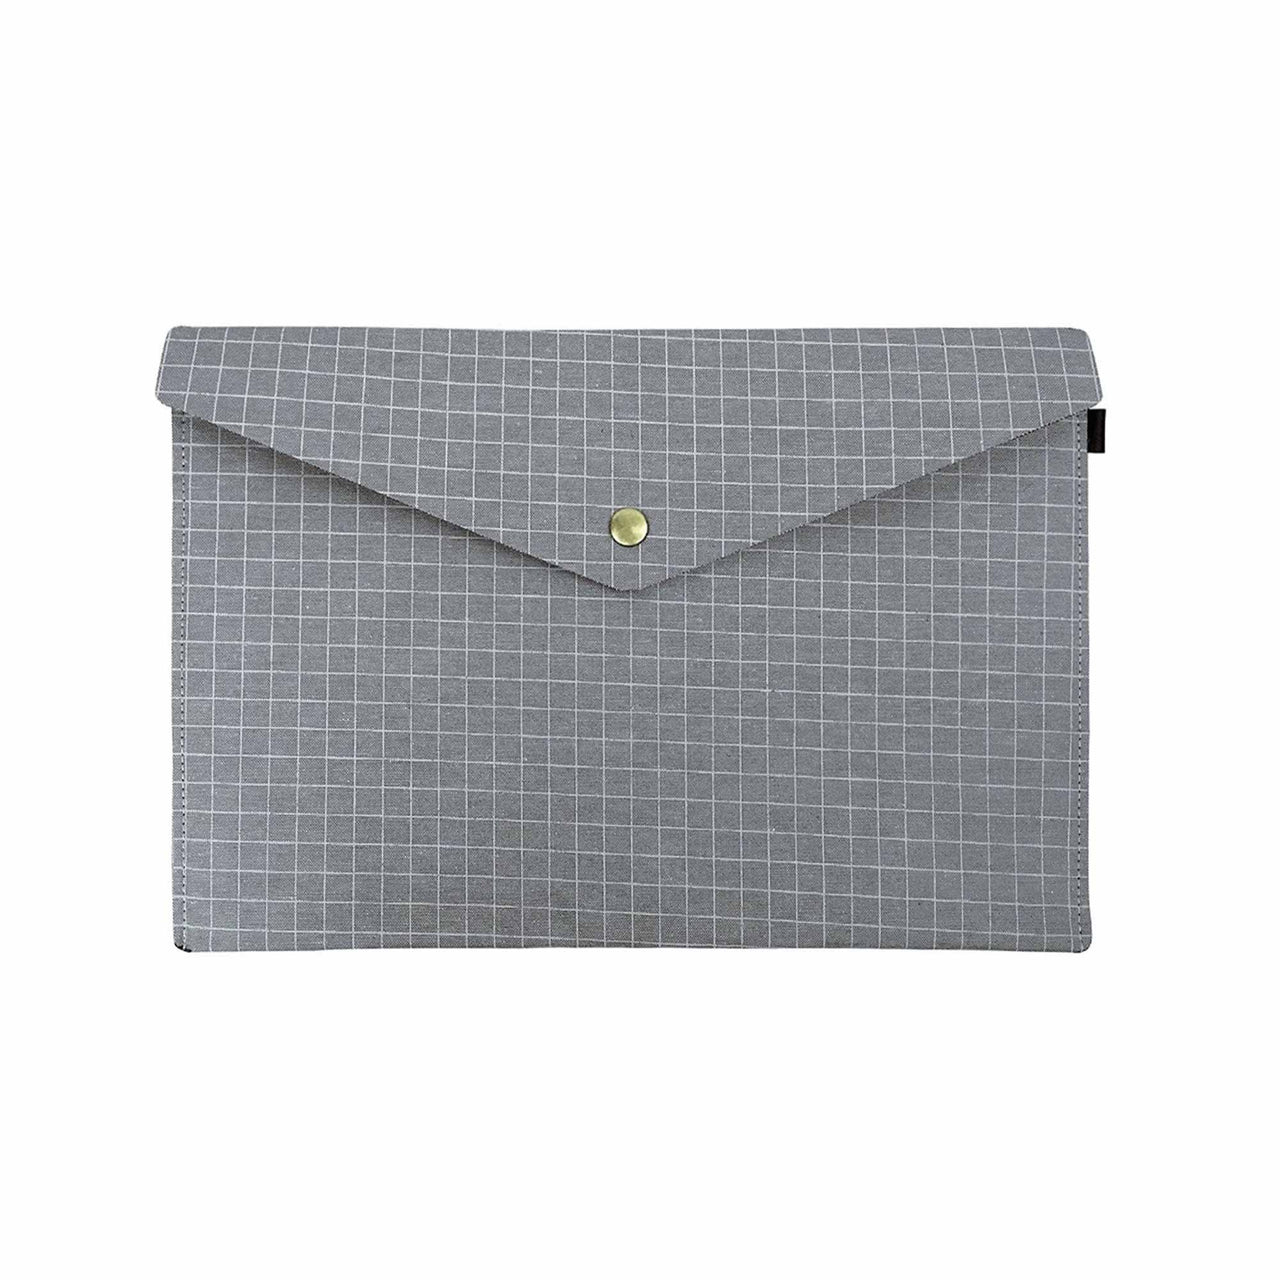 Chequered Fabric A4 Documents Folder Pouch - Grey